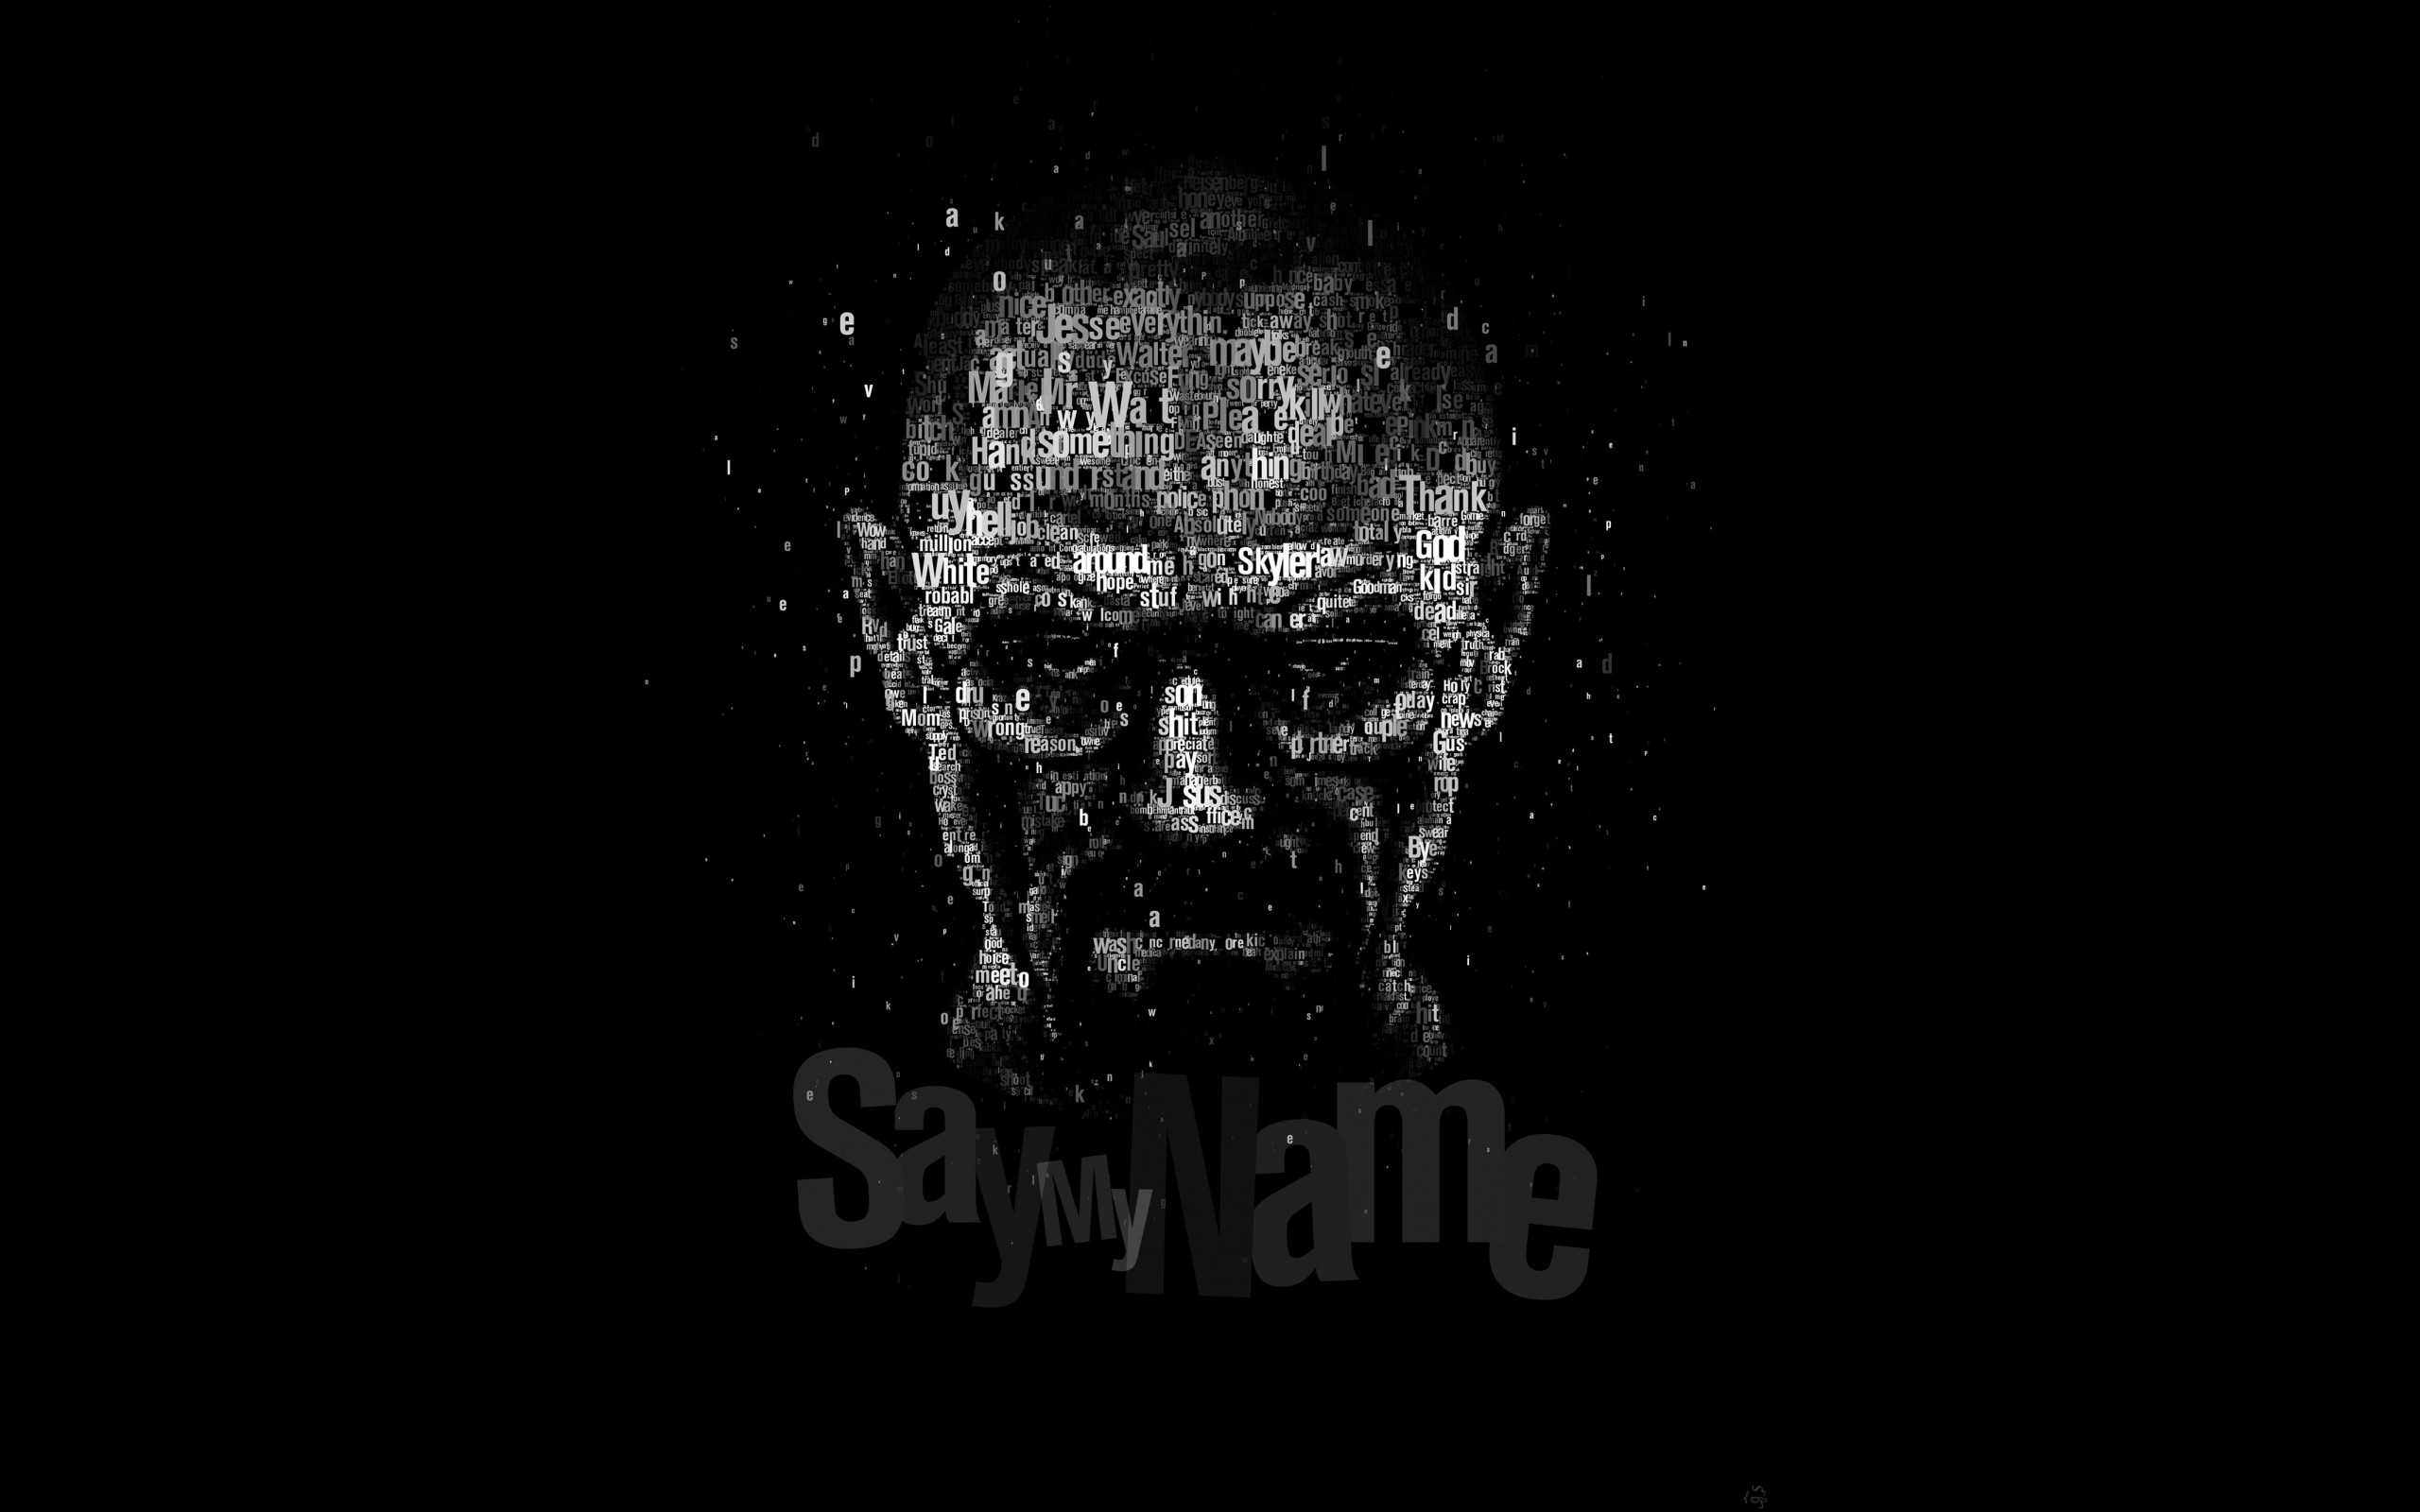 Say My Name - Typography Art Wallpaper for Desktop 2560x1600